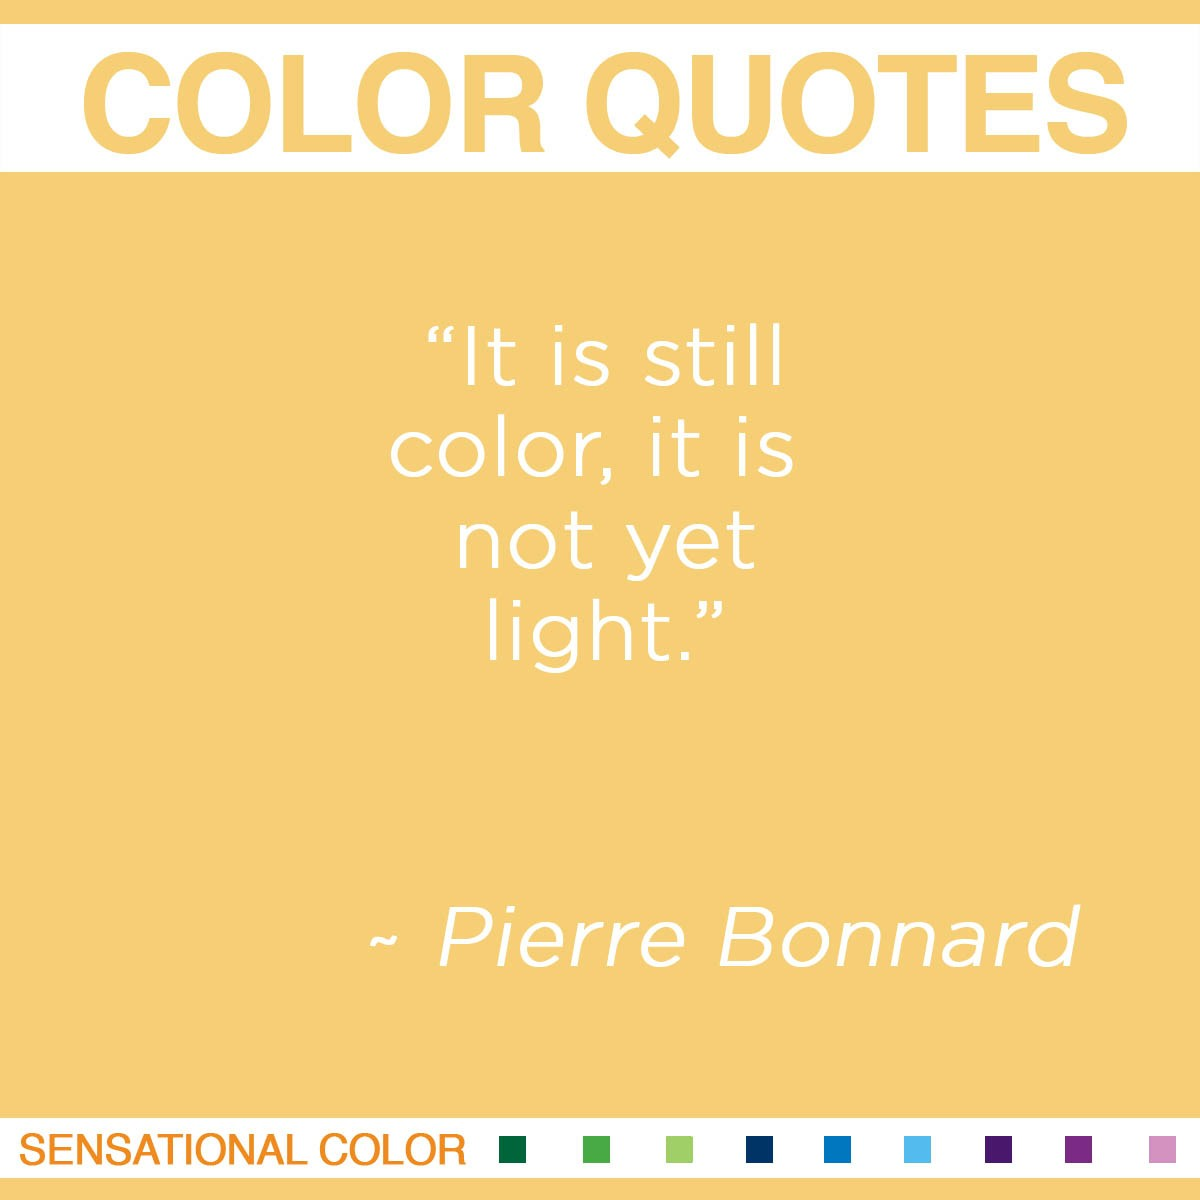 """It is still color, it is not yet light."" - Pierre Bonnard"